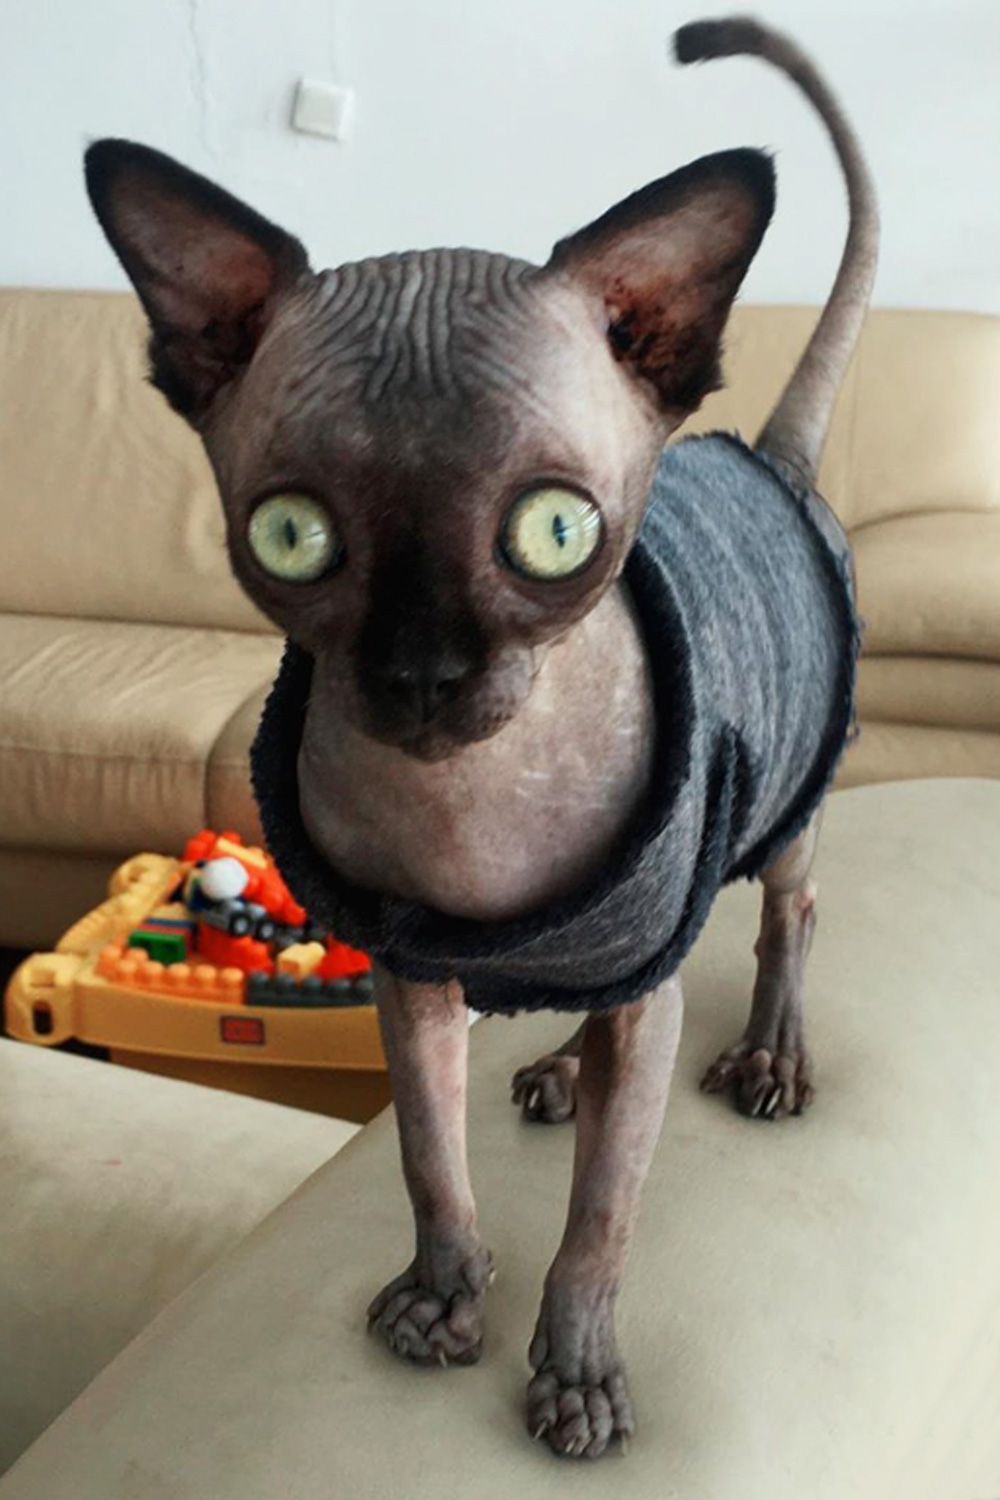 Lucy the Sphynx cat stood in an outfit) - A Sphynx cat with an enlarged head that looks like an adorable bat has been conquering hearts thanks to her unusual appearance.